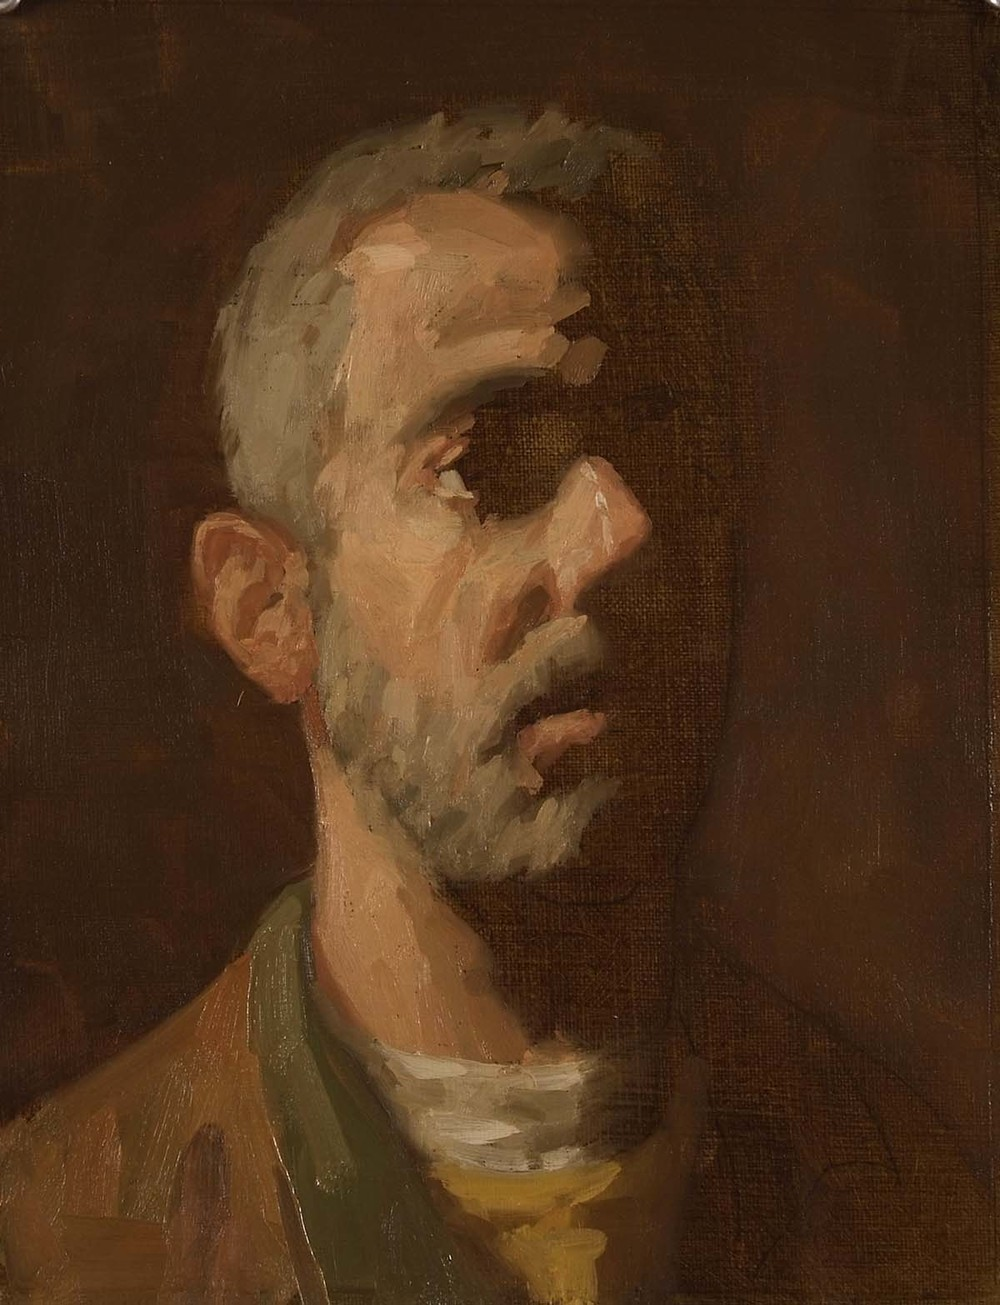 Portrait of J. S., 15 x 13  inches, oil on linen